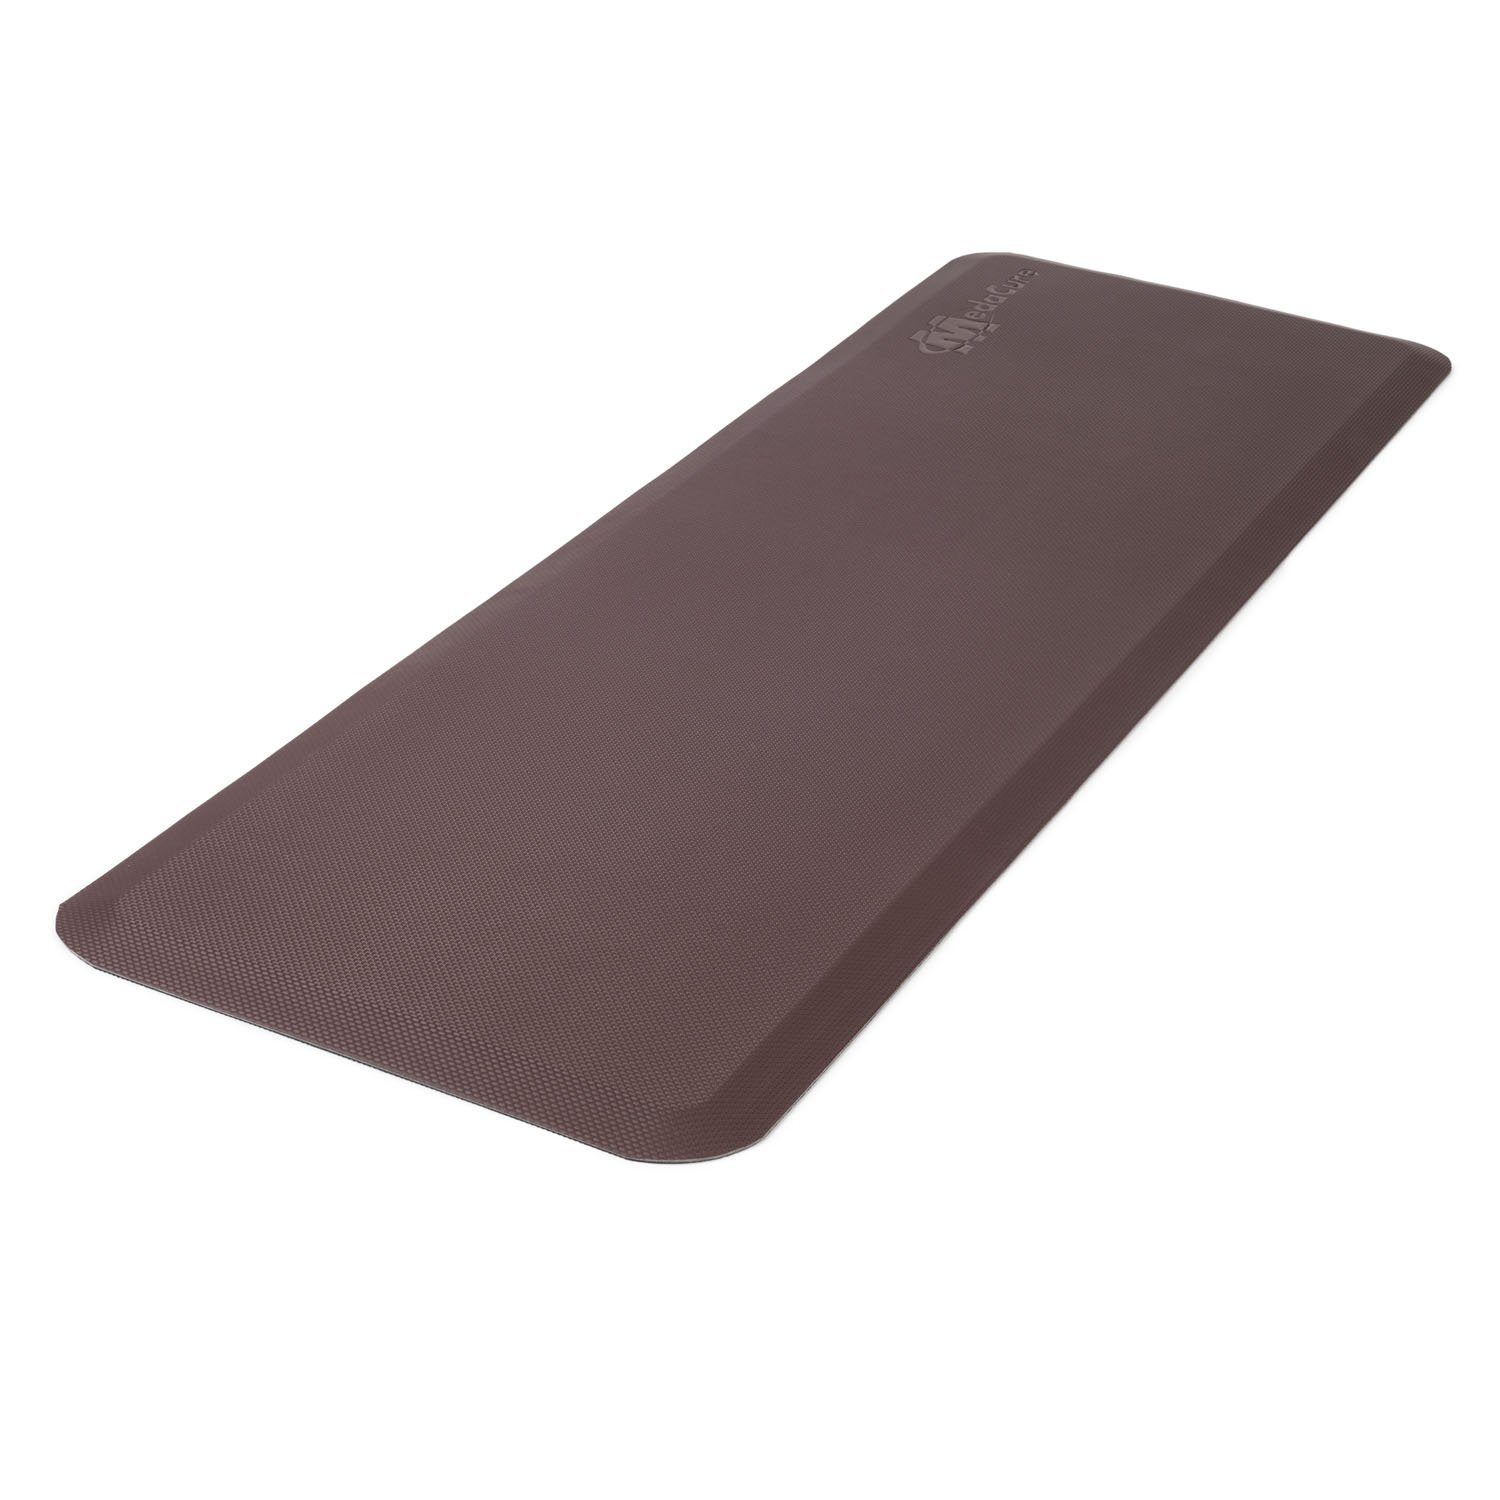 Fall Safety Matt - Bedside Fall Protection Mat for Elderly, Senior and Handicap - Prevention Pad Reduces Risk of Injury from Impact - Prevent Bed Falling - Antifatigue Material w/Beveled Edge